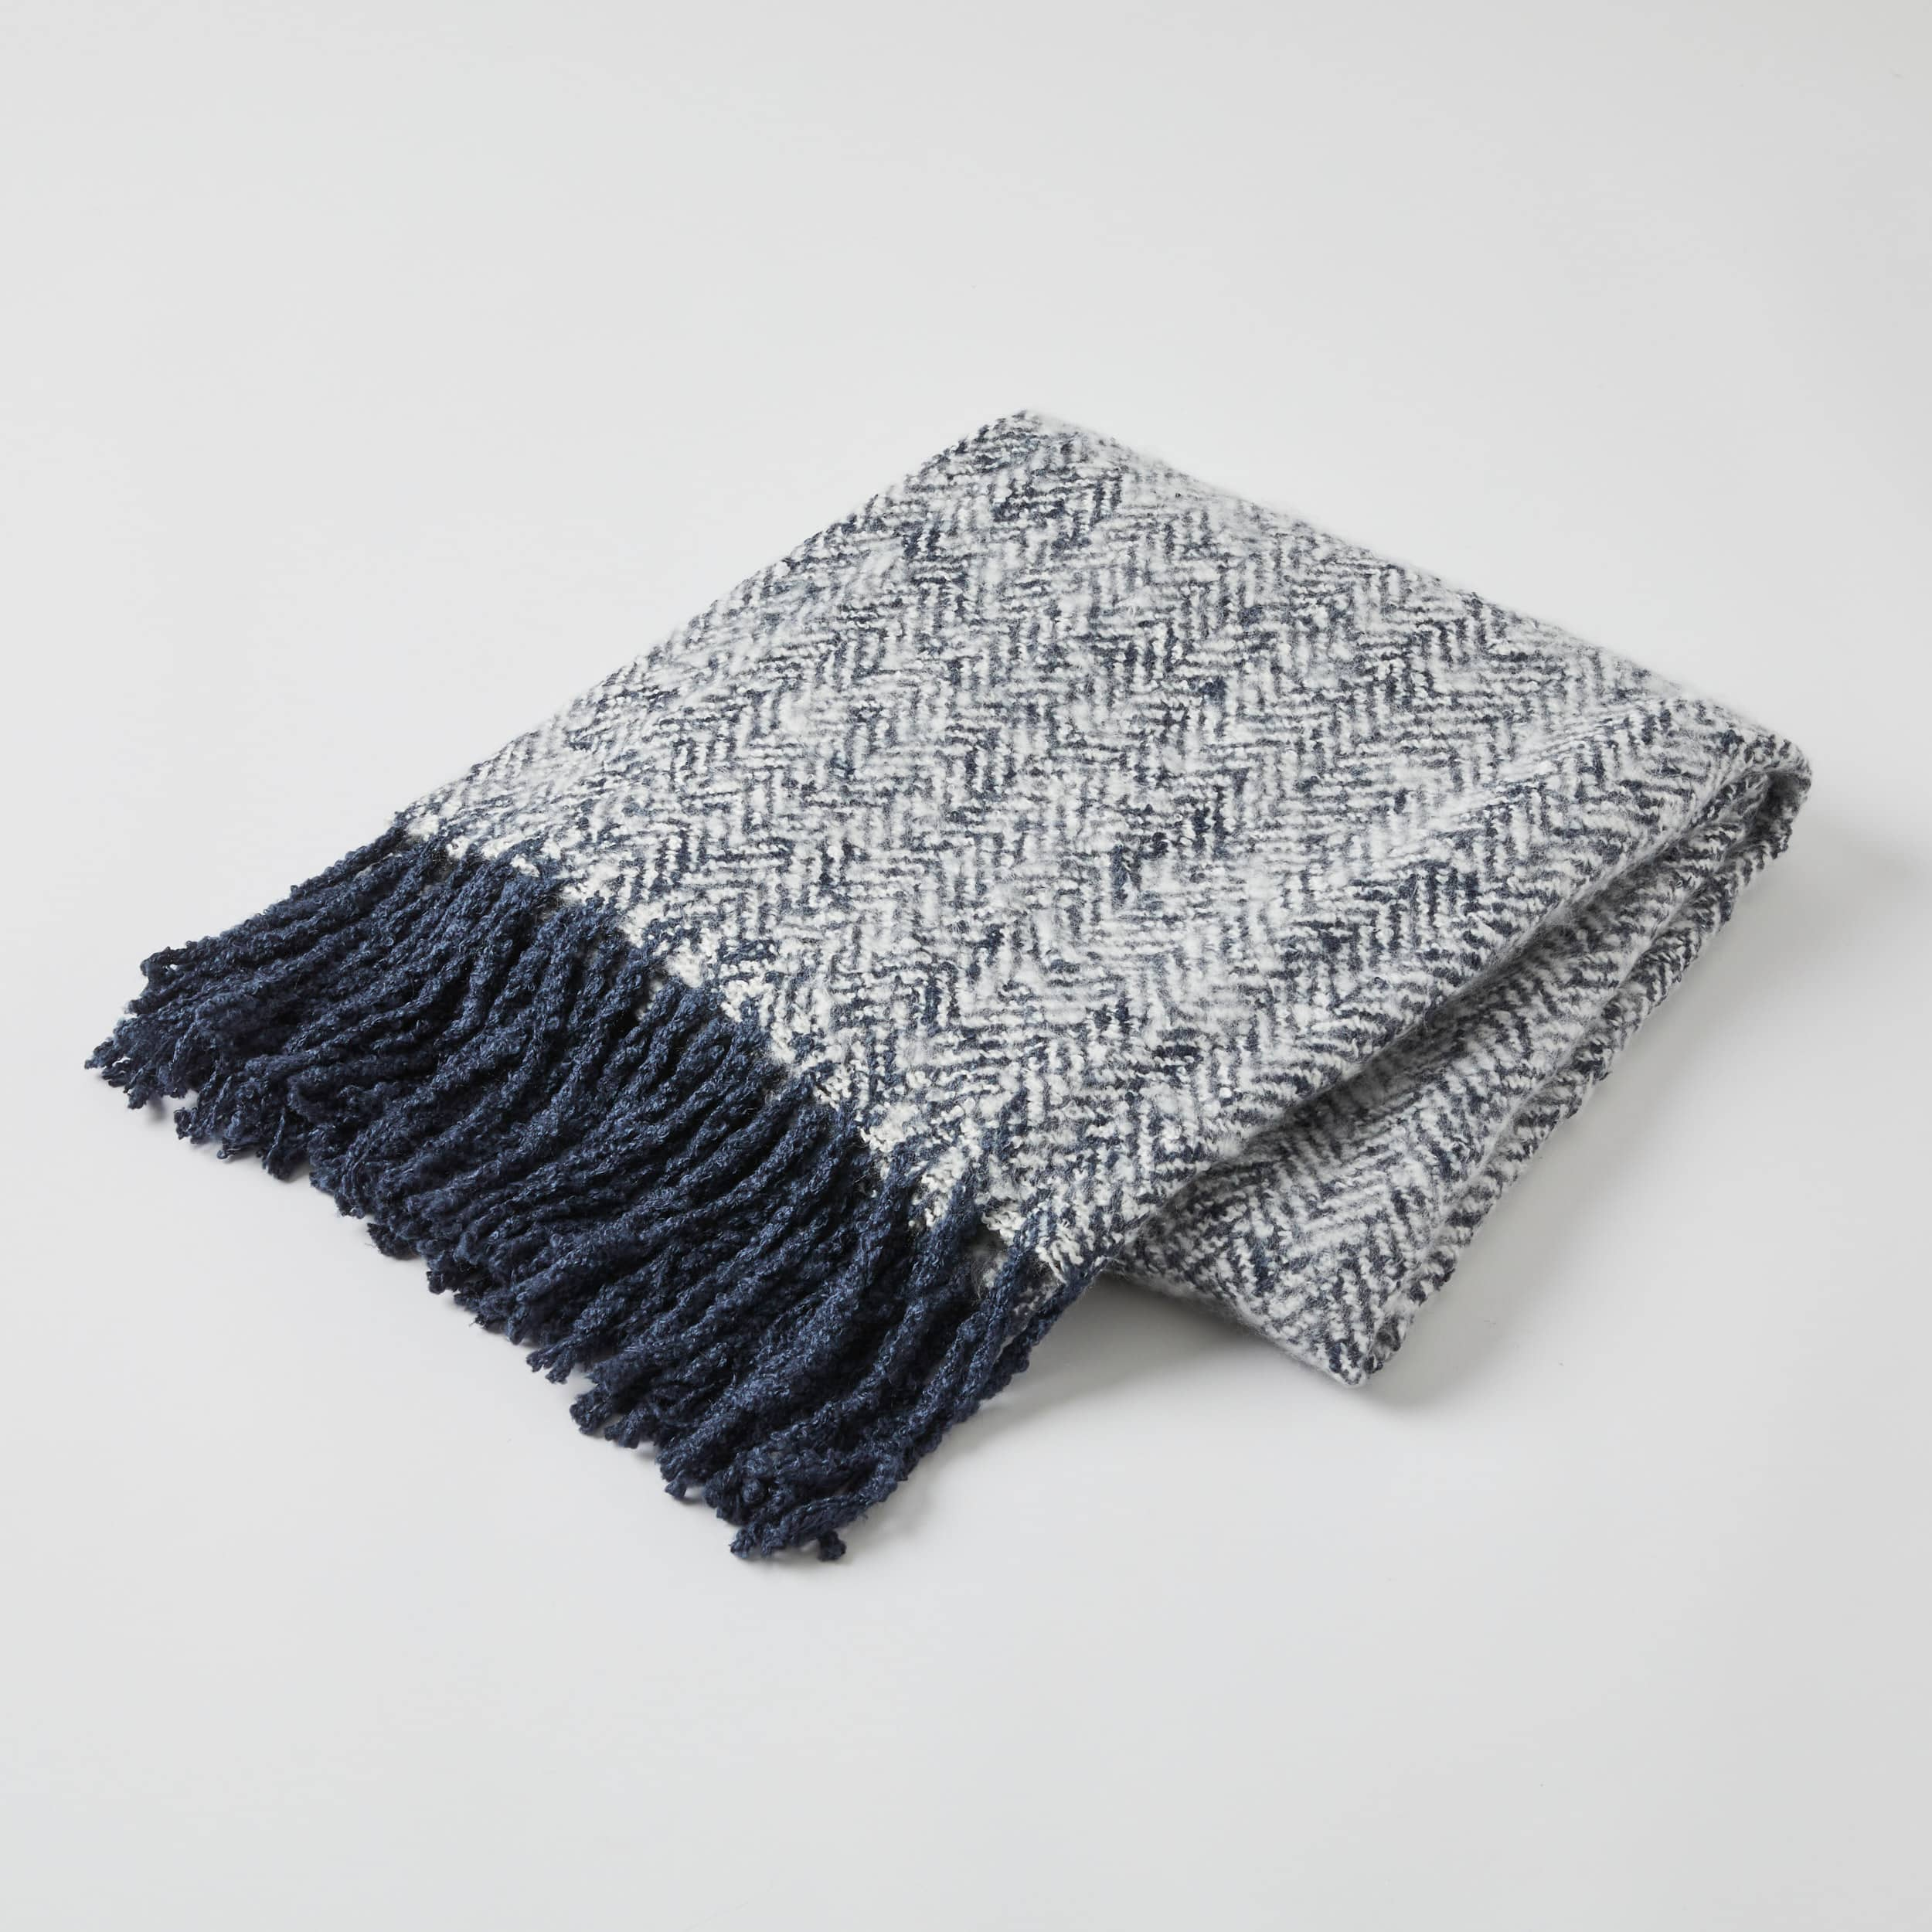 Navy Herringbone Acrylic Throw 127 x 152cm